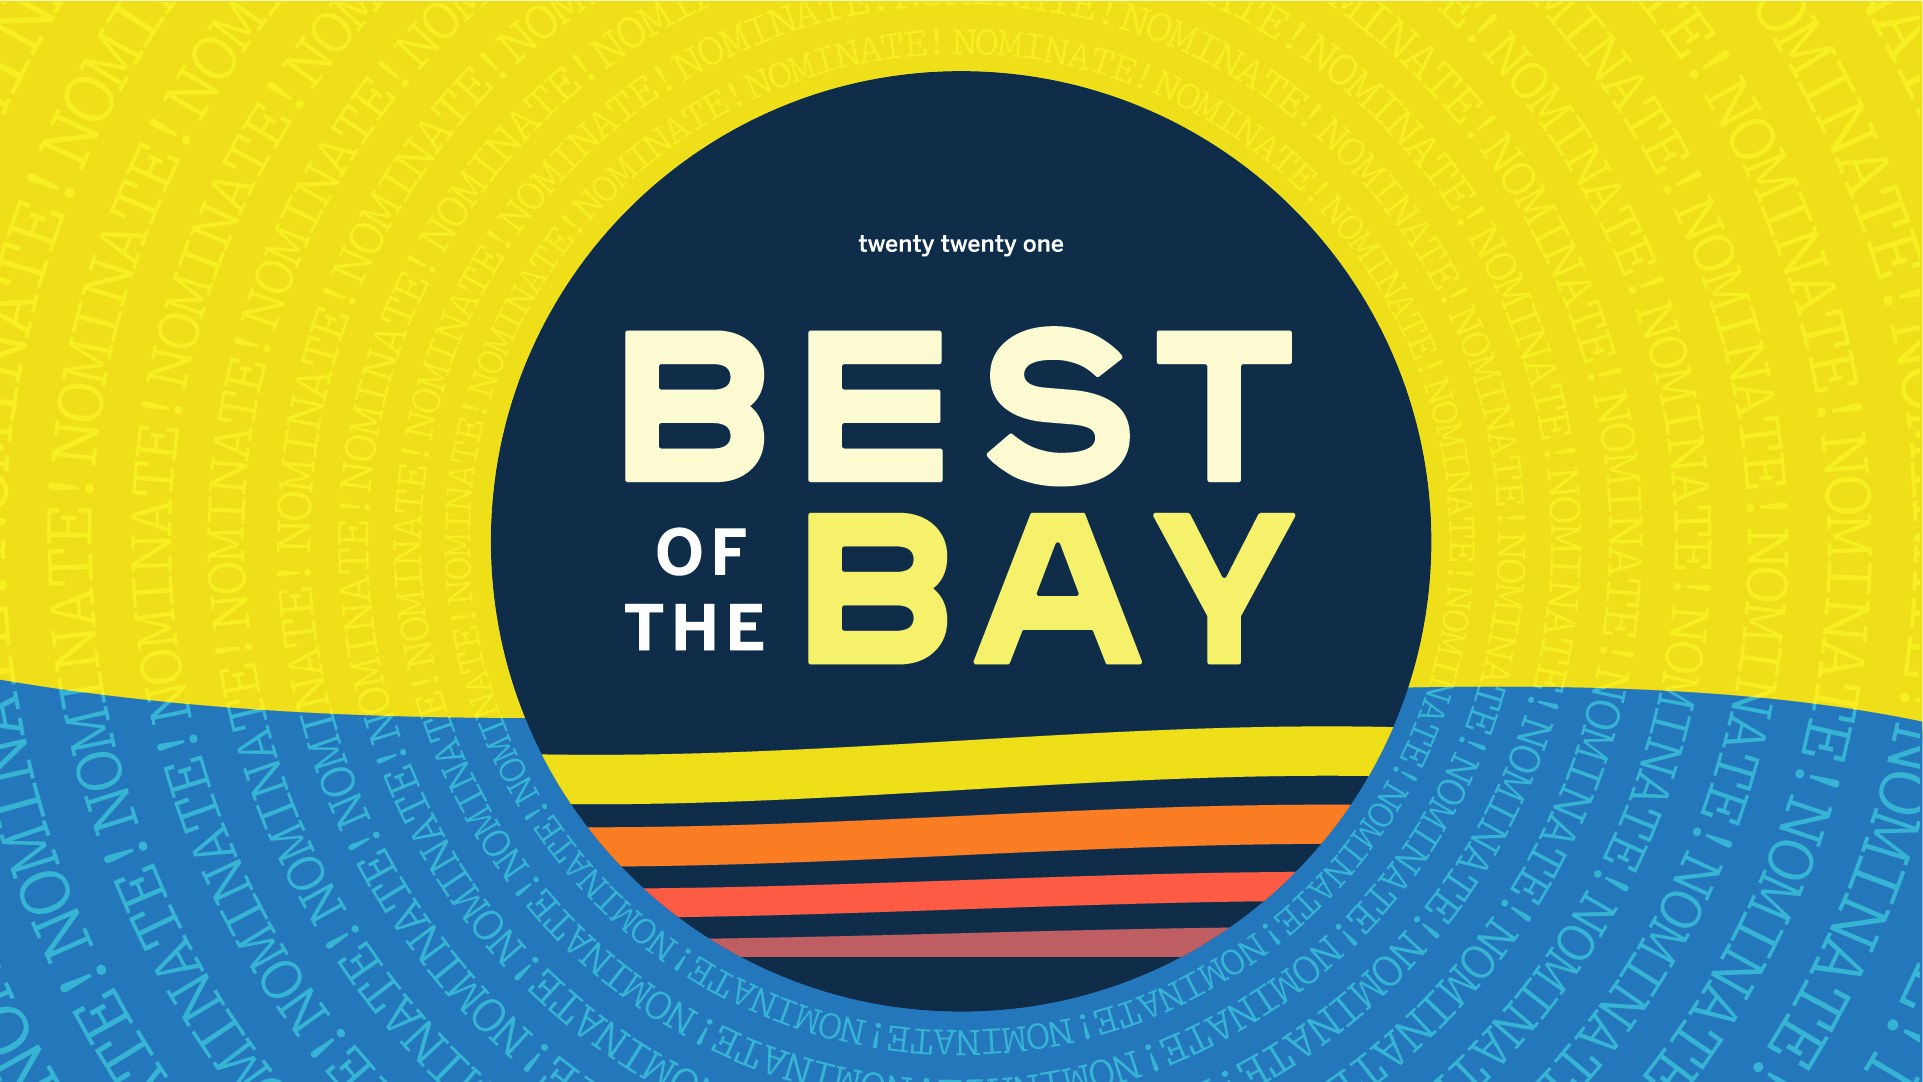 Welcome to Best of the Bay 2021